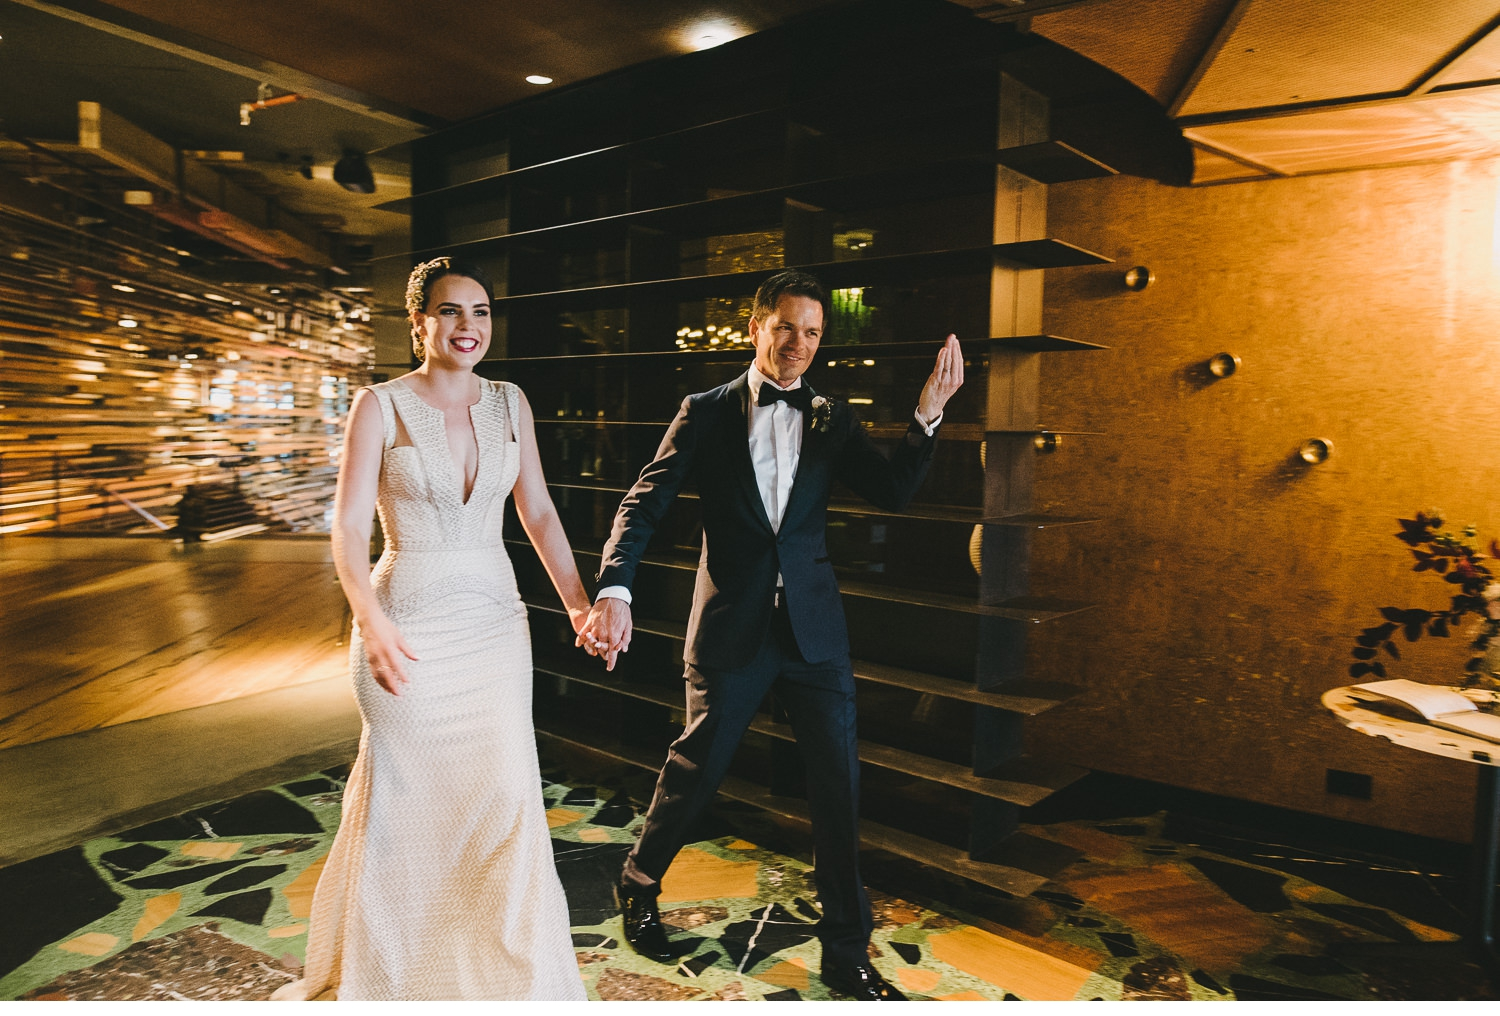 Morgan Roberts Photography_Wedding_nishi gallery hotel hotel_Jay and Lucy 3618.jpg